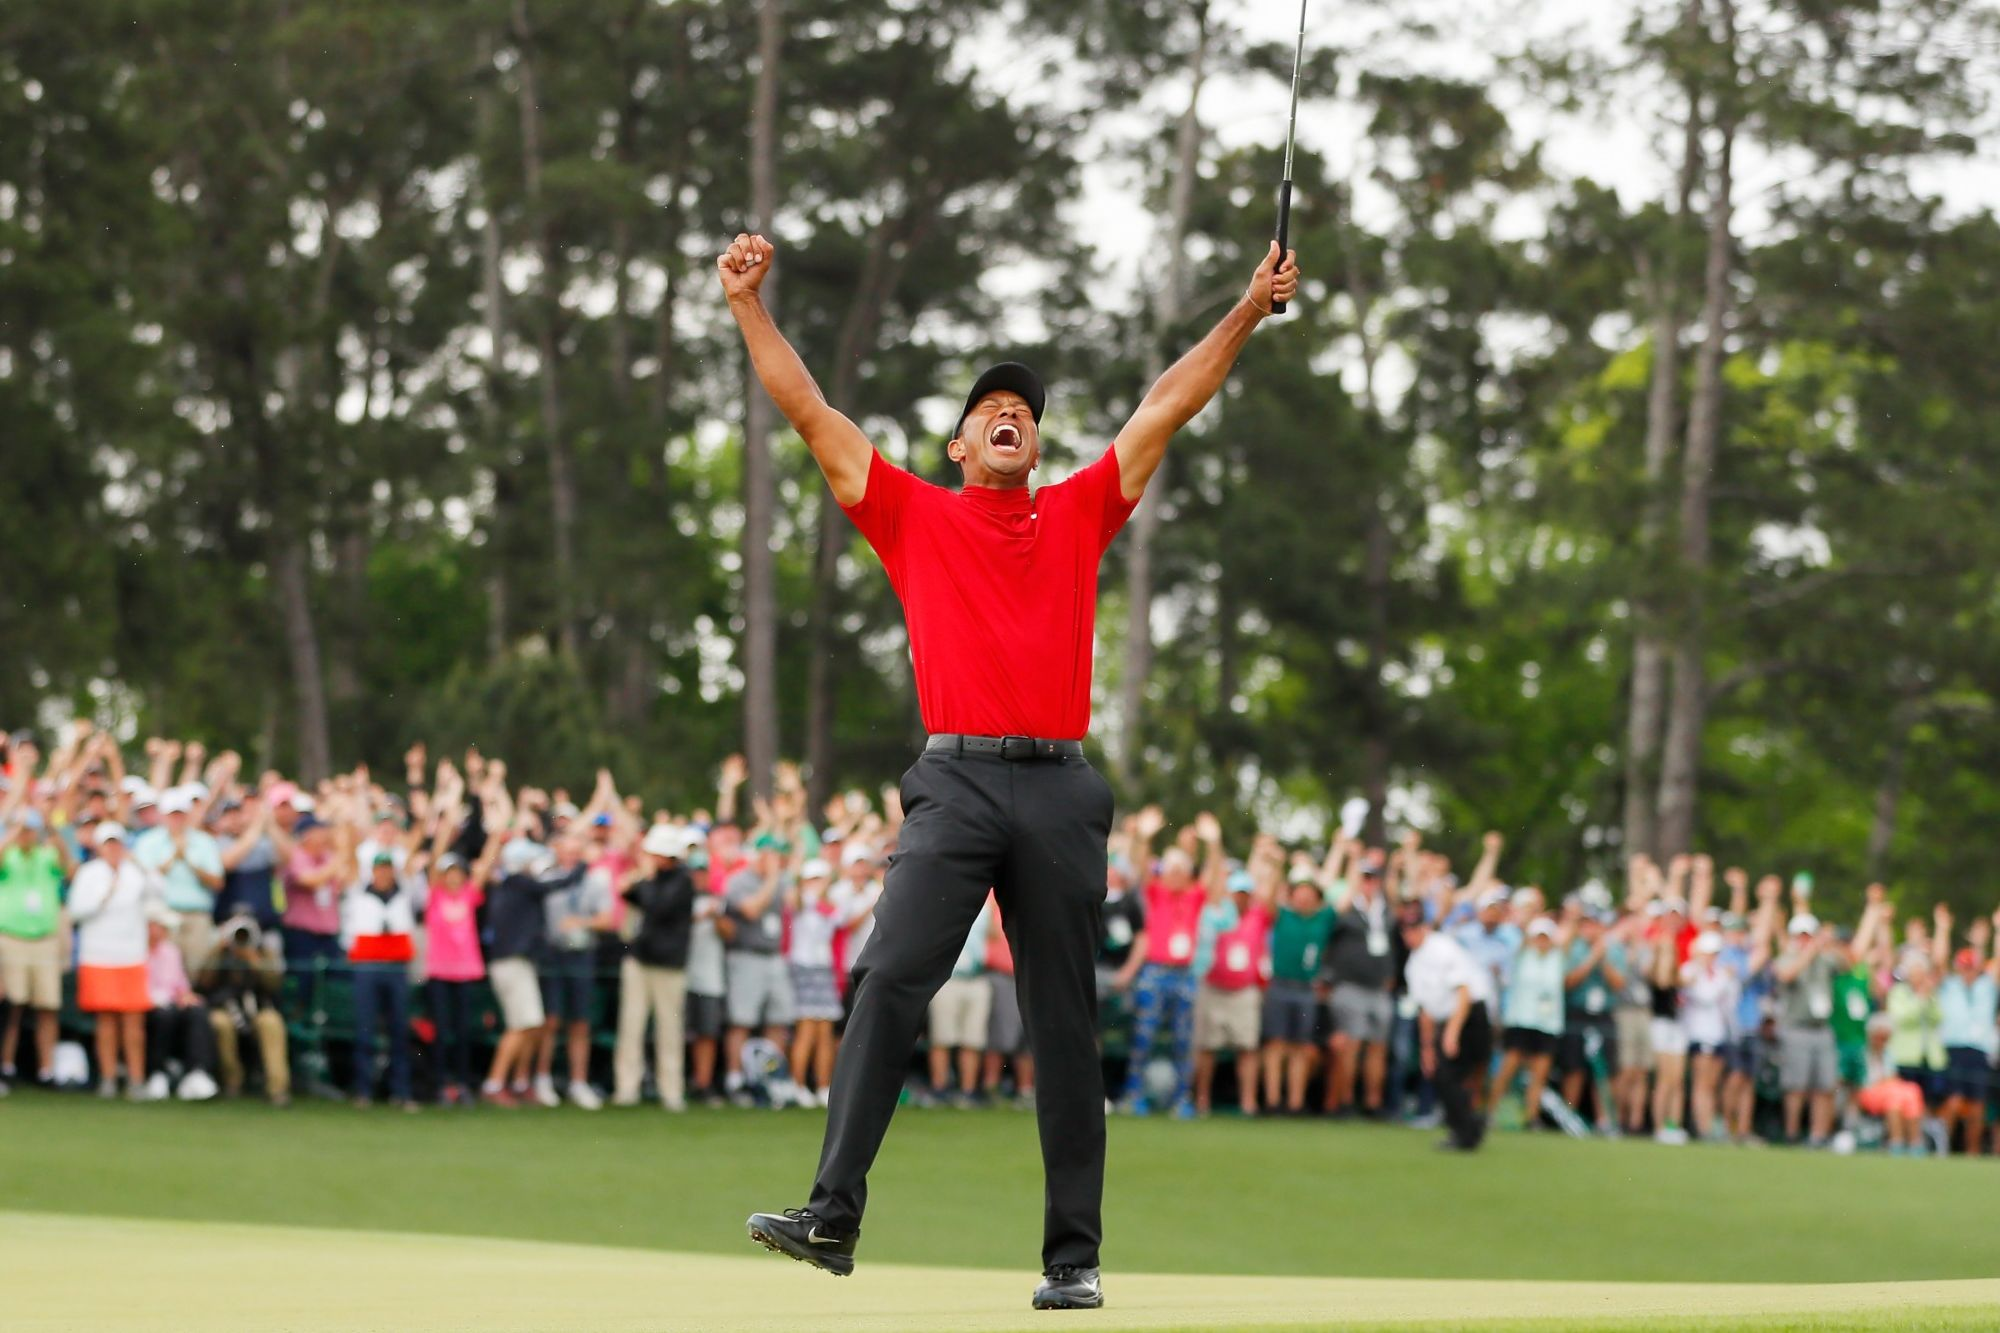 Want a Tiger Woods Comeback? All It Takes Is the Right Mindset.